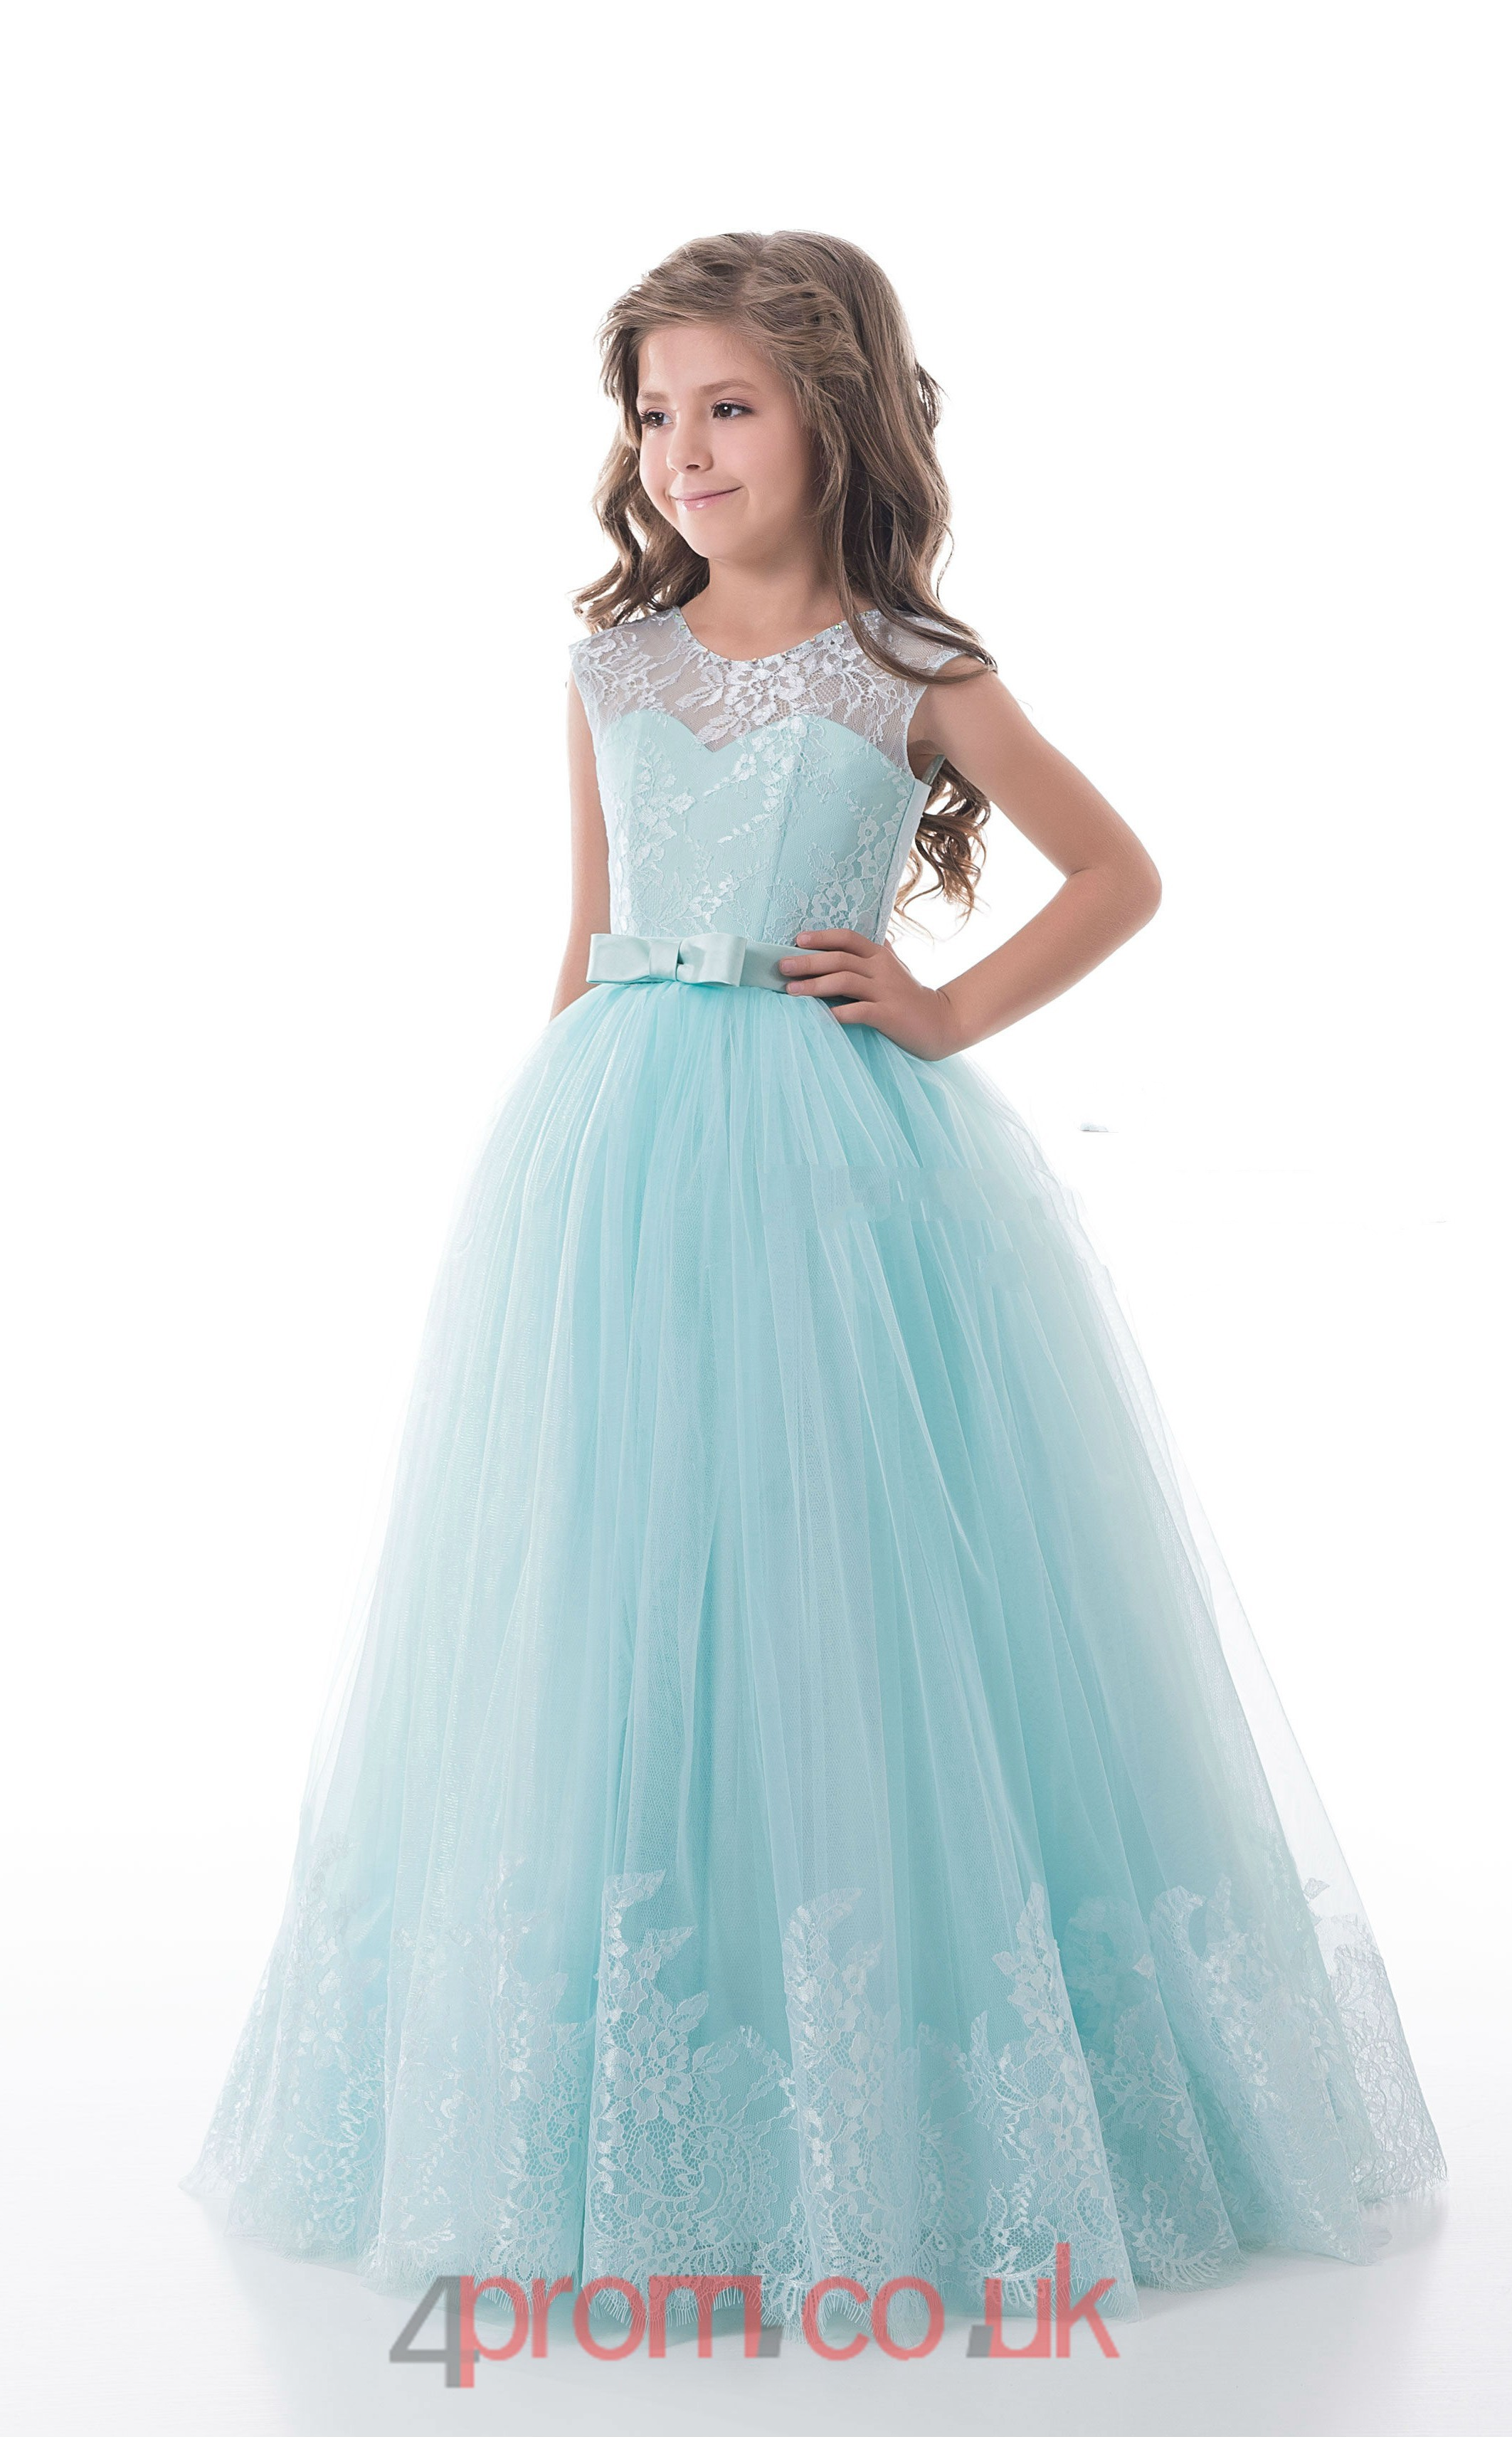 Old Fashioned Prom Dresses For Kids Uk Frieze - Womens Wedding ...